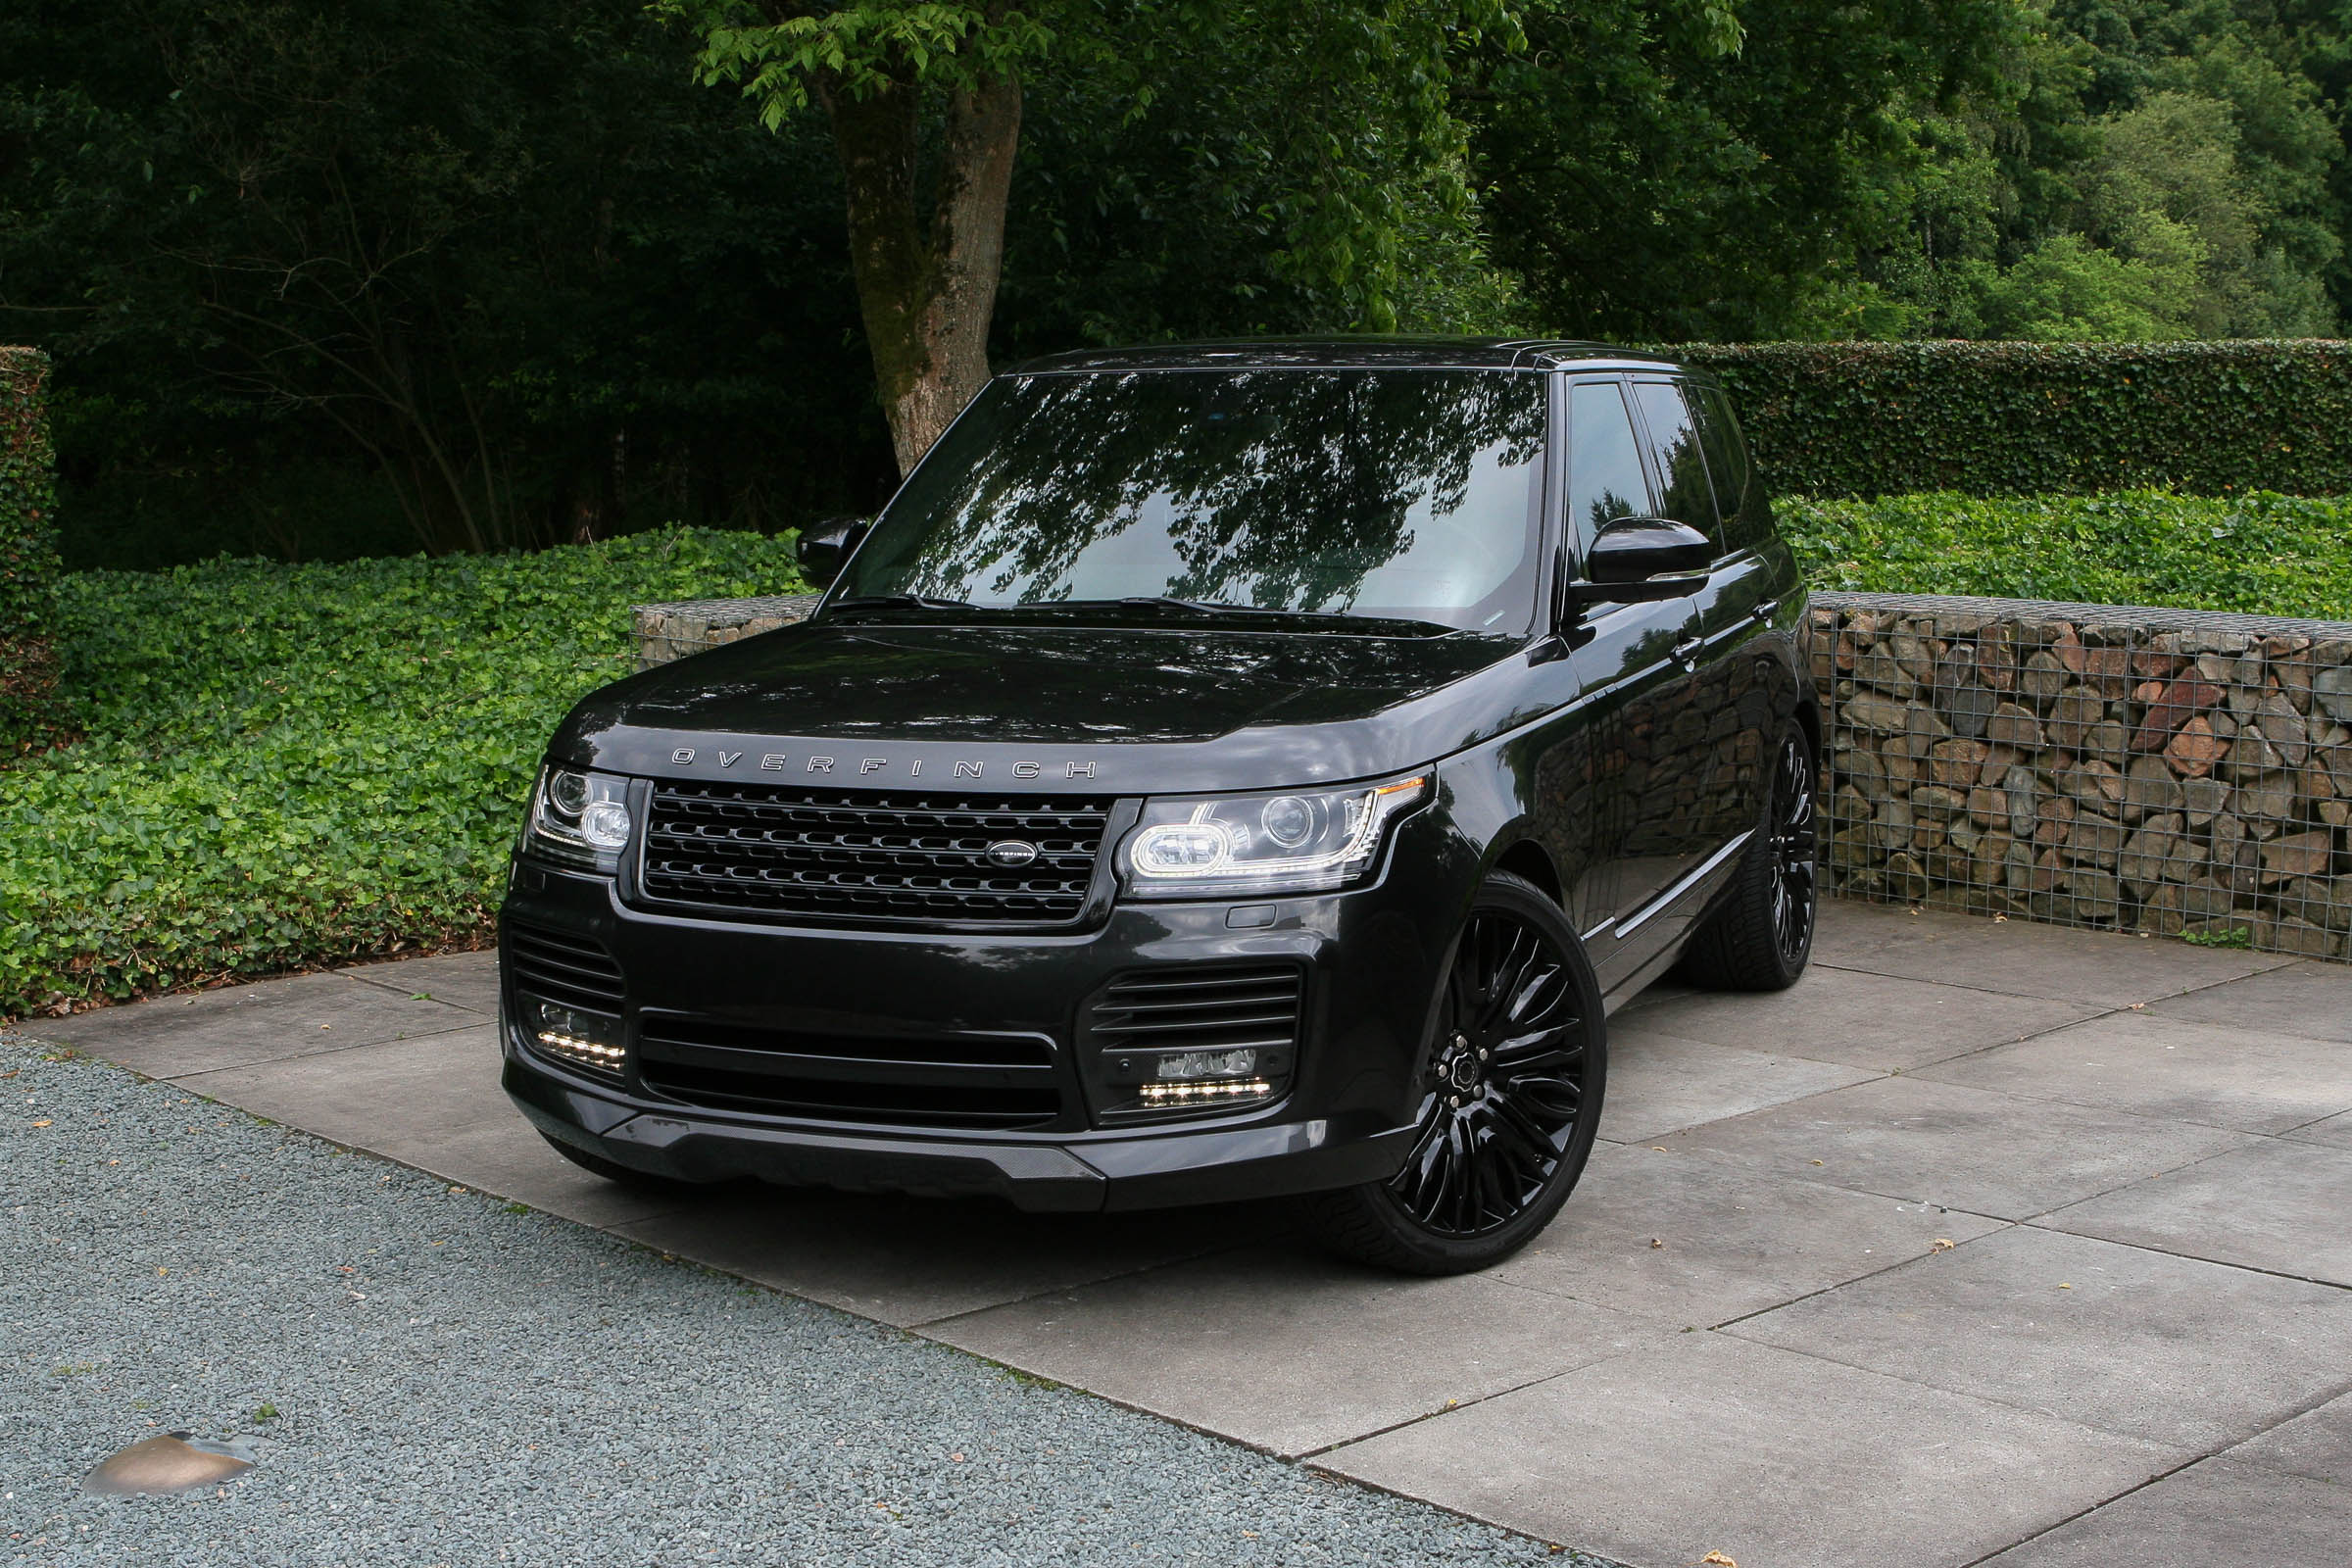 Overfinch Range Rover Supercharged 2015